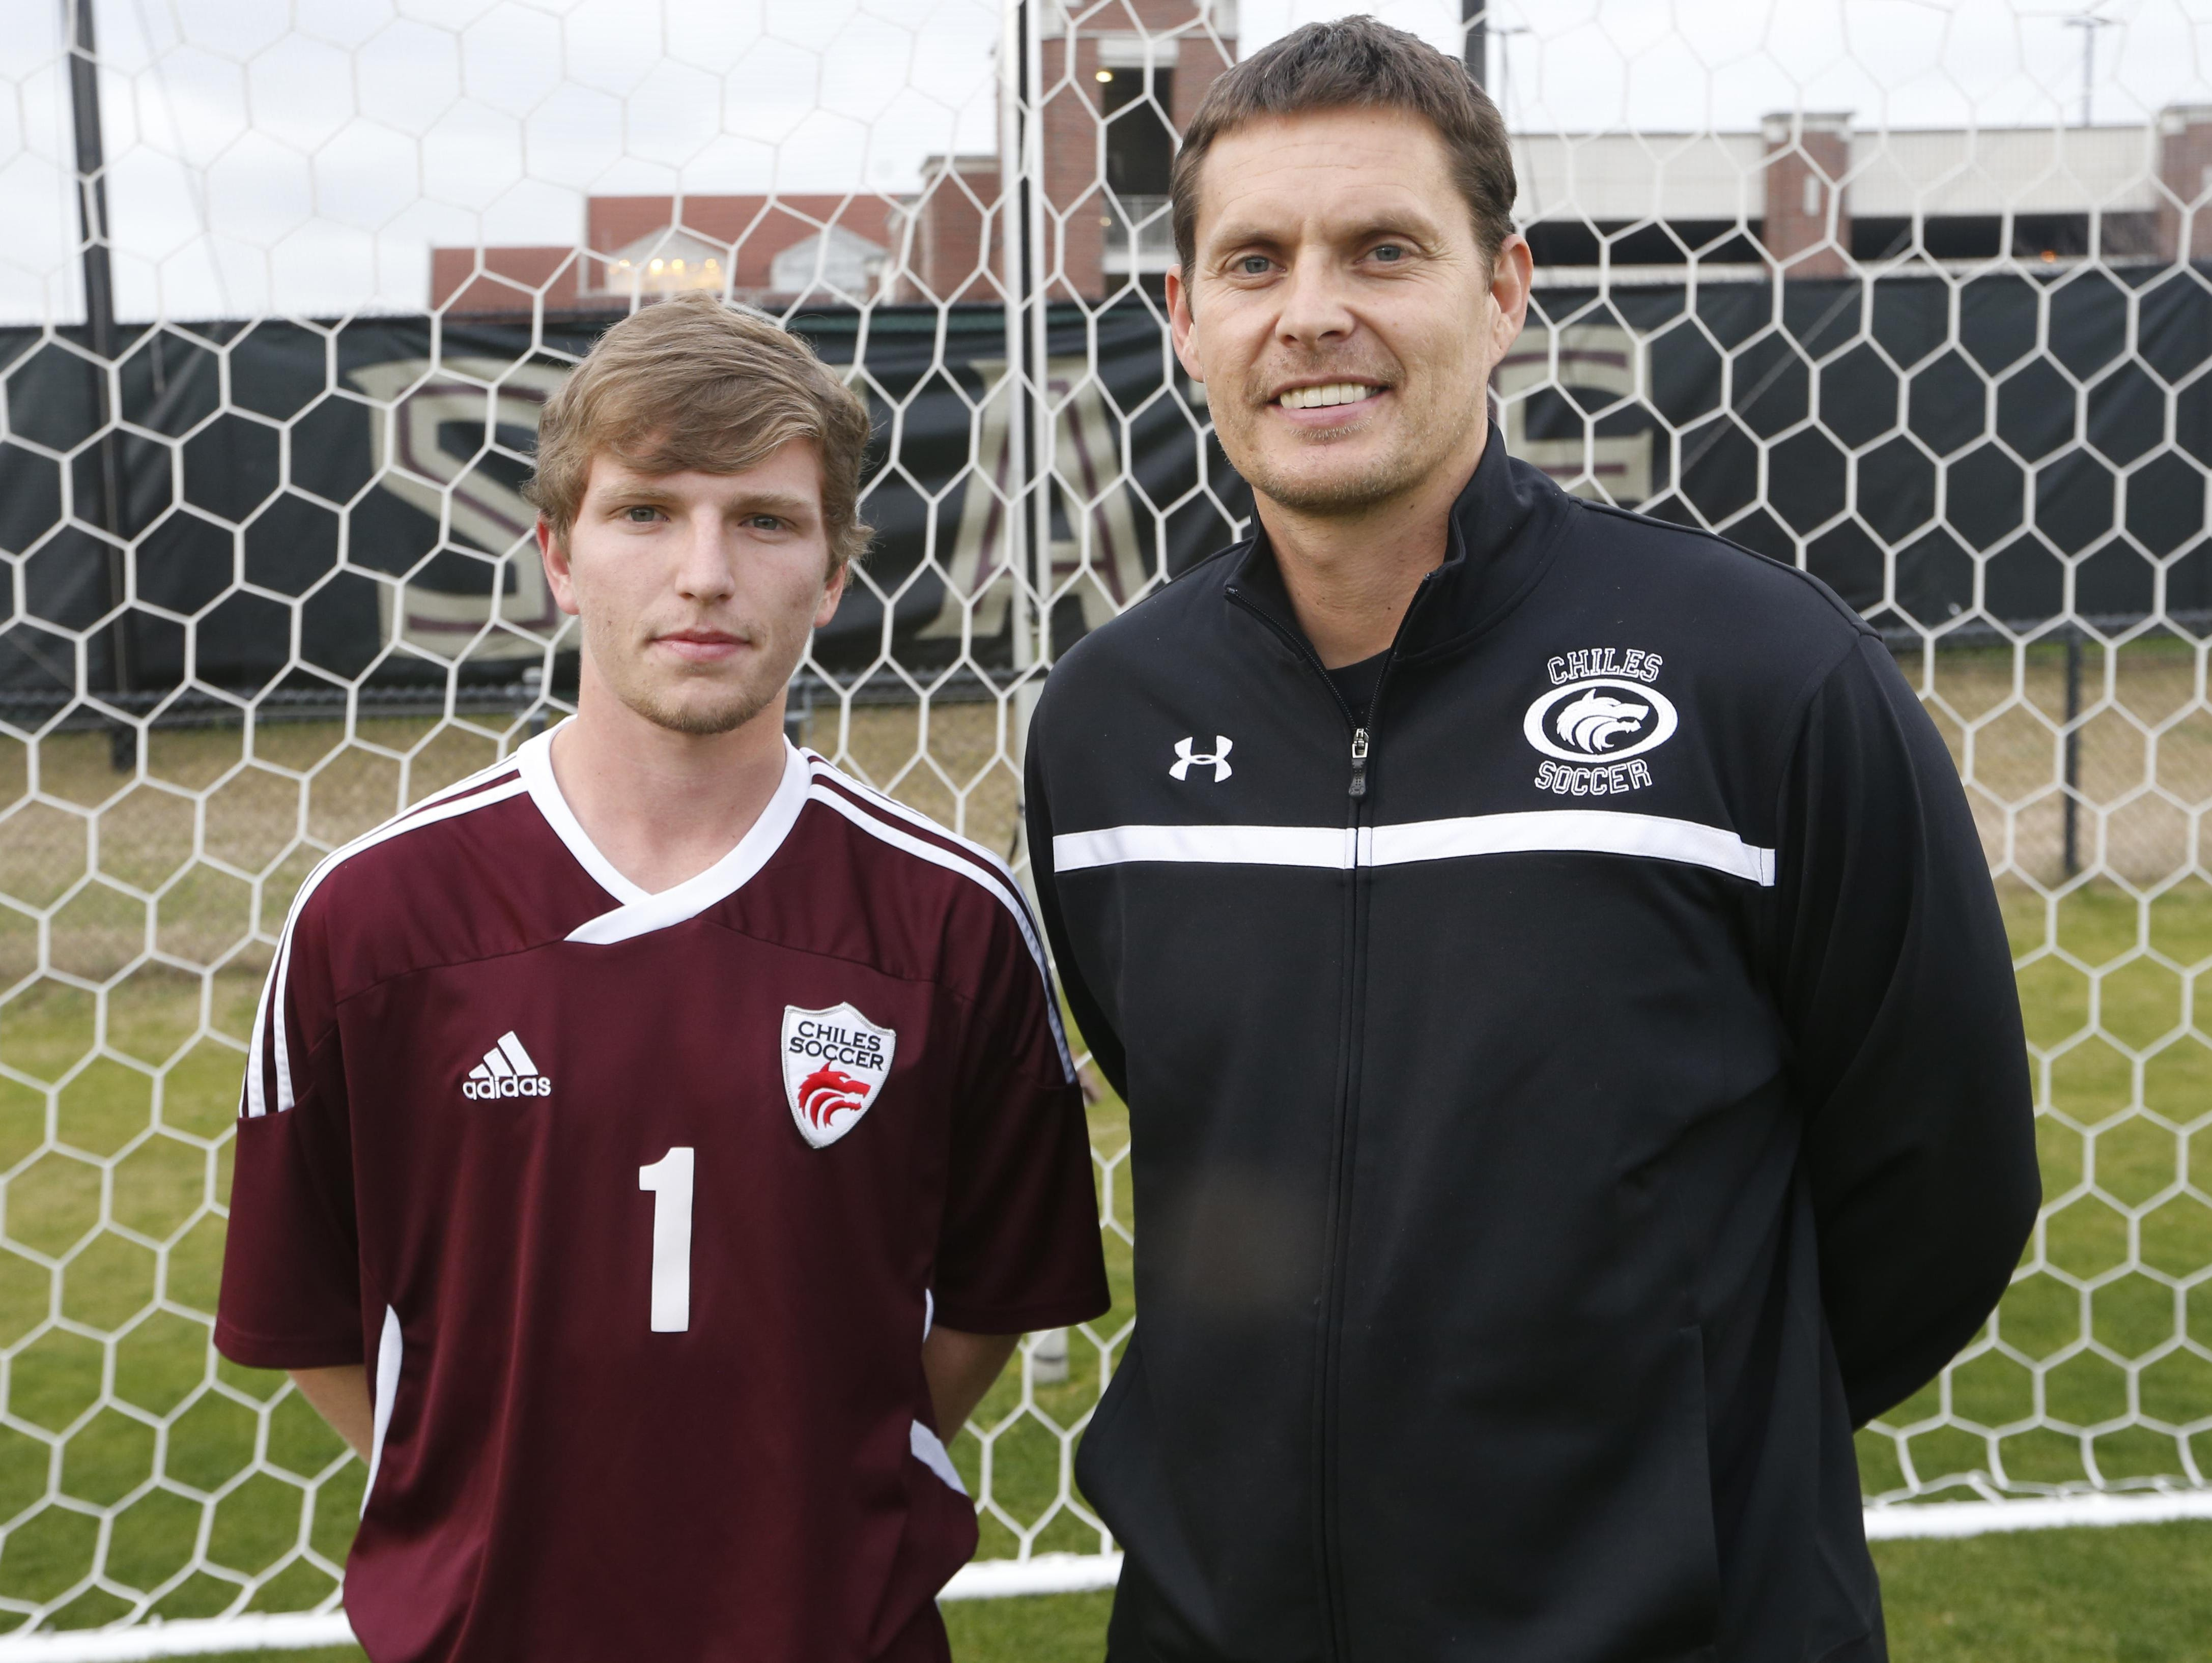 Chiles' Jimmy Gillard was the All-Big Bend Player of the Year last year after scoring 26 goals with 14 assists and helping the Timberwolves achieve a 29-3 season, a state title and a top-10 national ranking. For that reason also Chiles coach Bryan Wilkinson was the All-Big Bend Coach of the Year. The Timberwolves lost 14 seniors off last year's team as they behin their 2015-16 campaign.